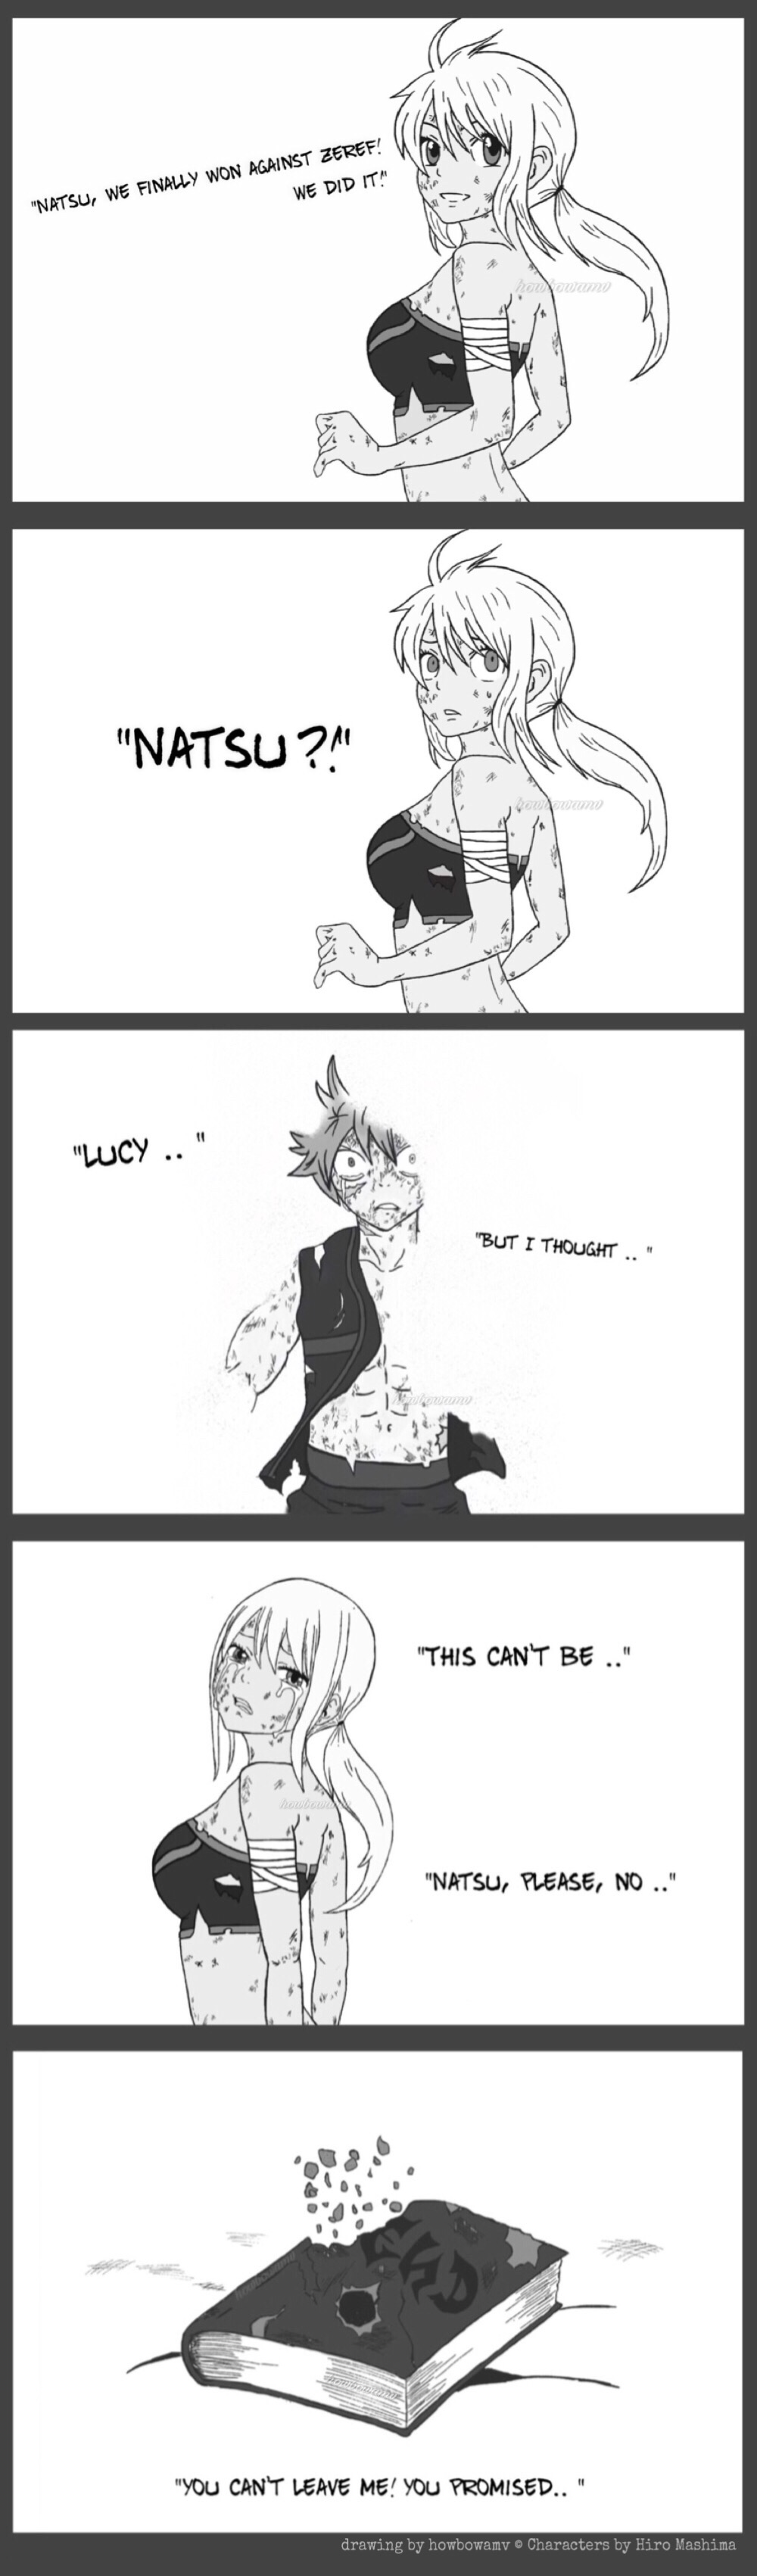 After Fairy Tail defeated Zeref (Nalu Fanfic) by howbowamv on DeviantArt